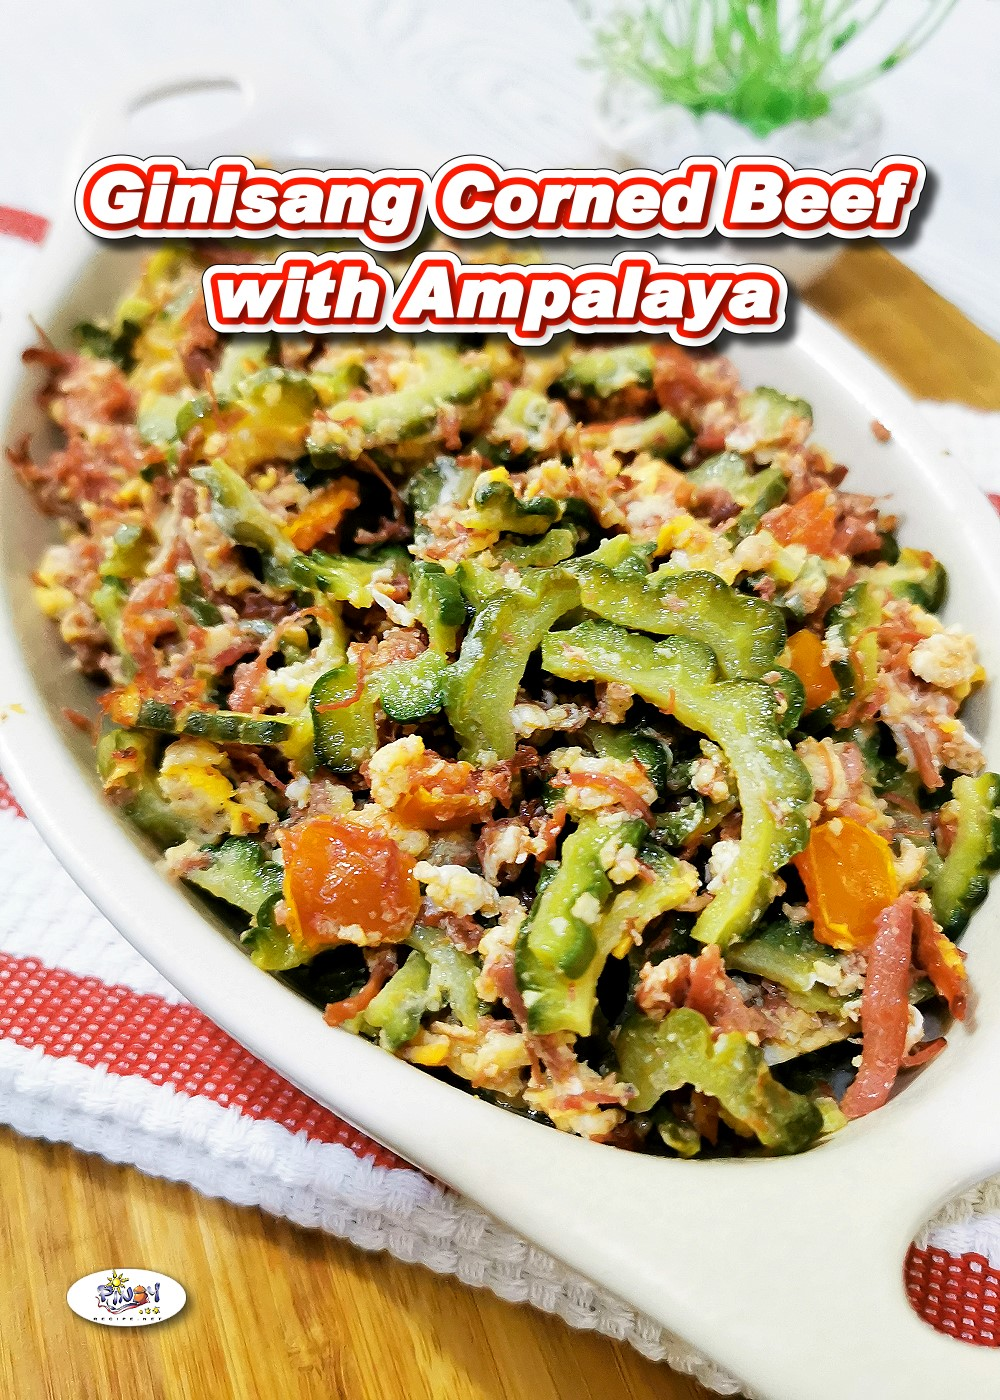 Corned Beef with Ampalaya Recipe